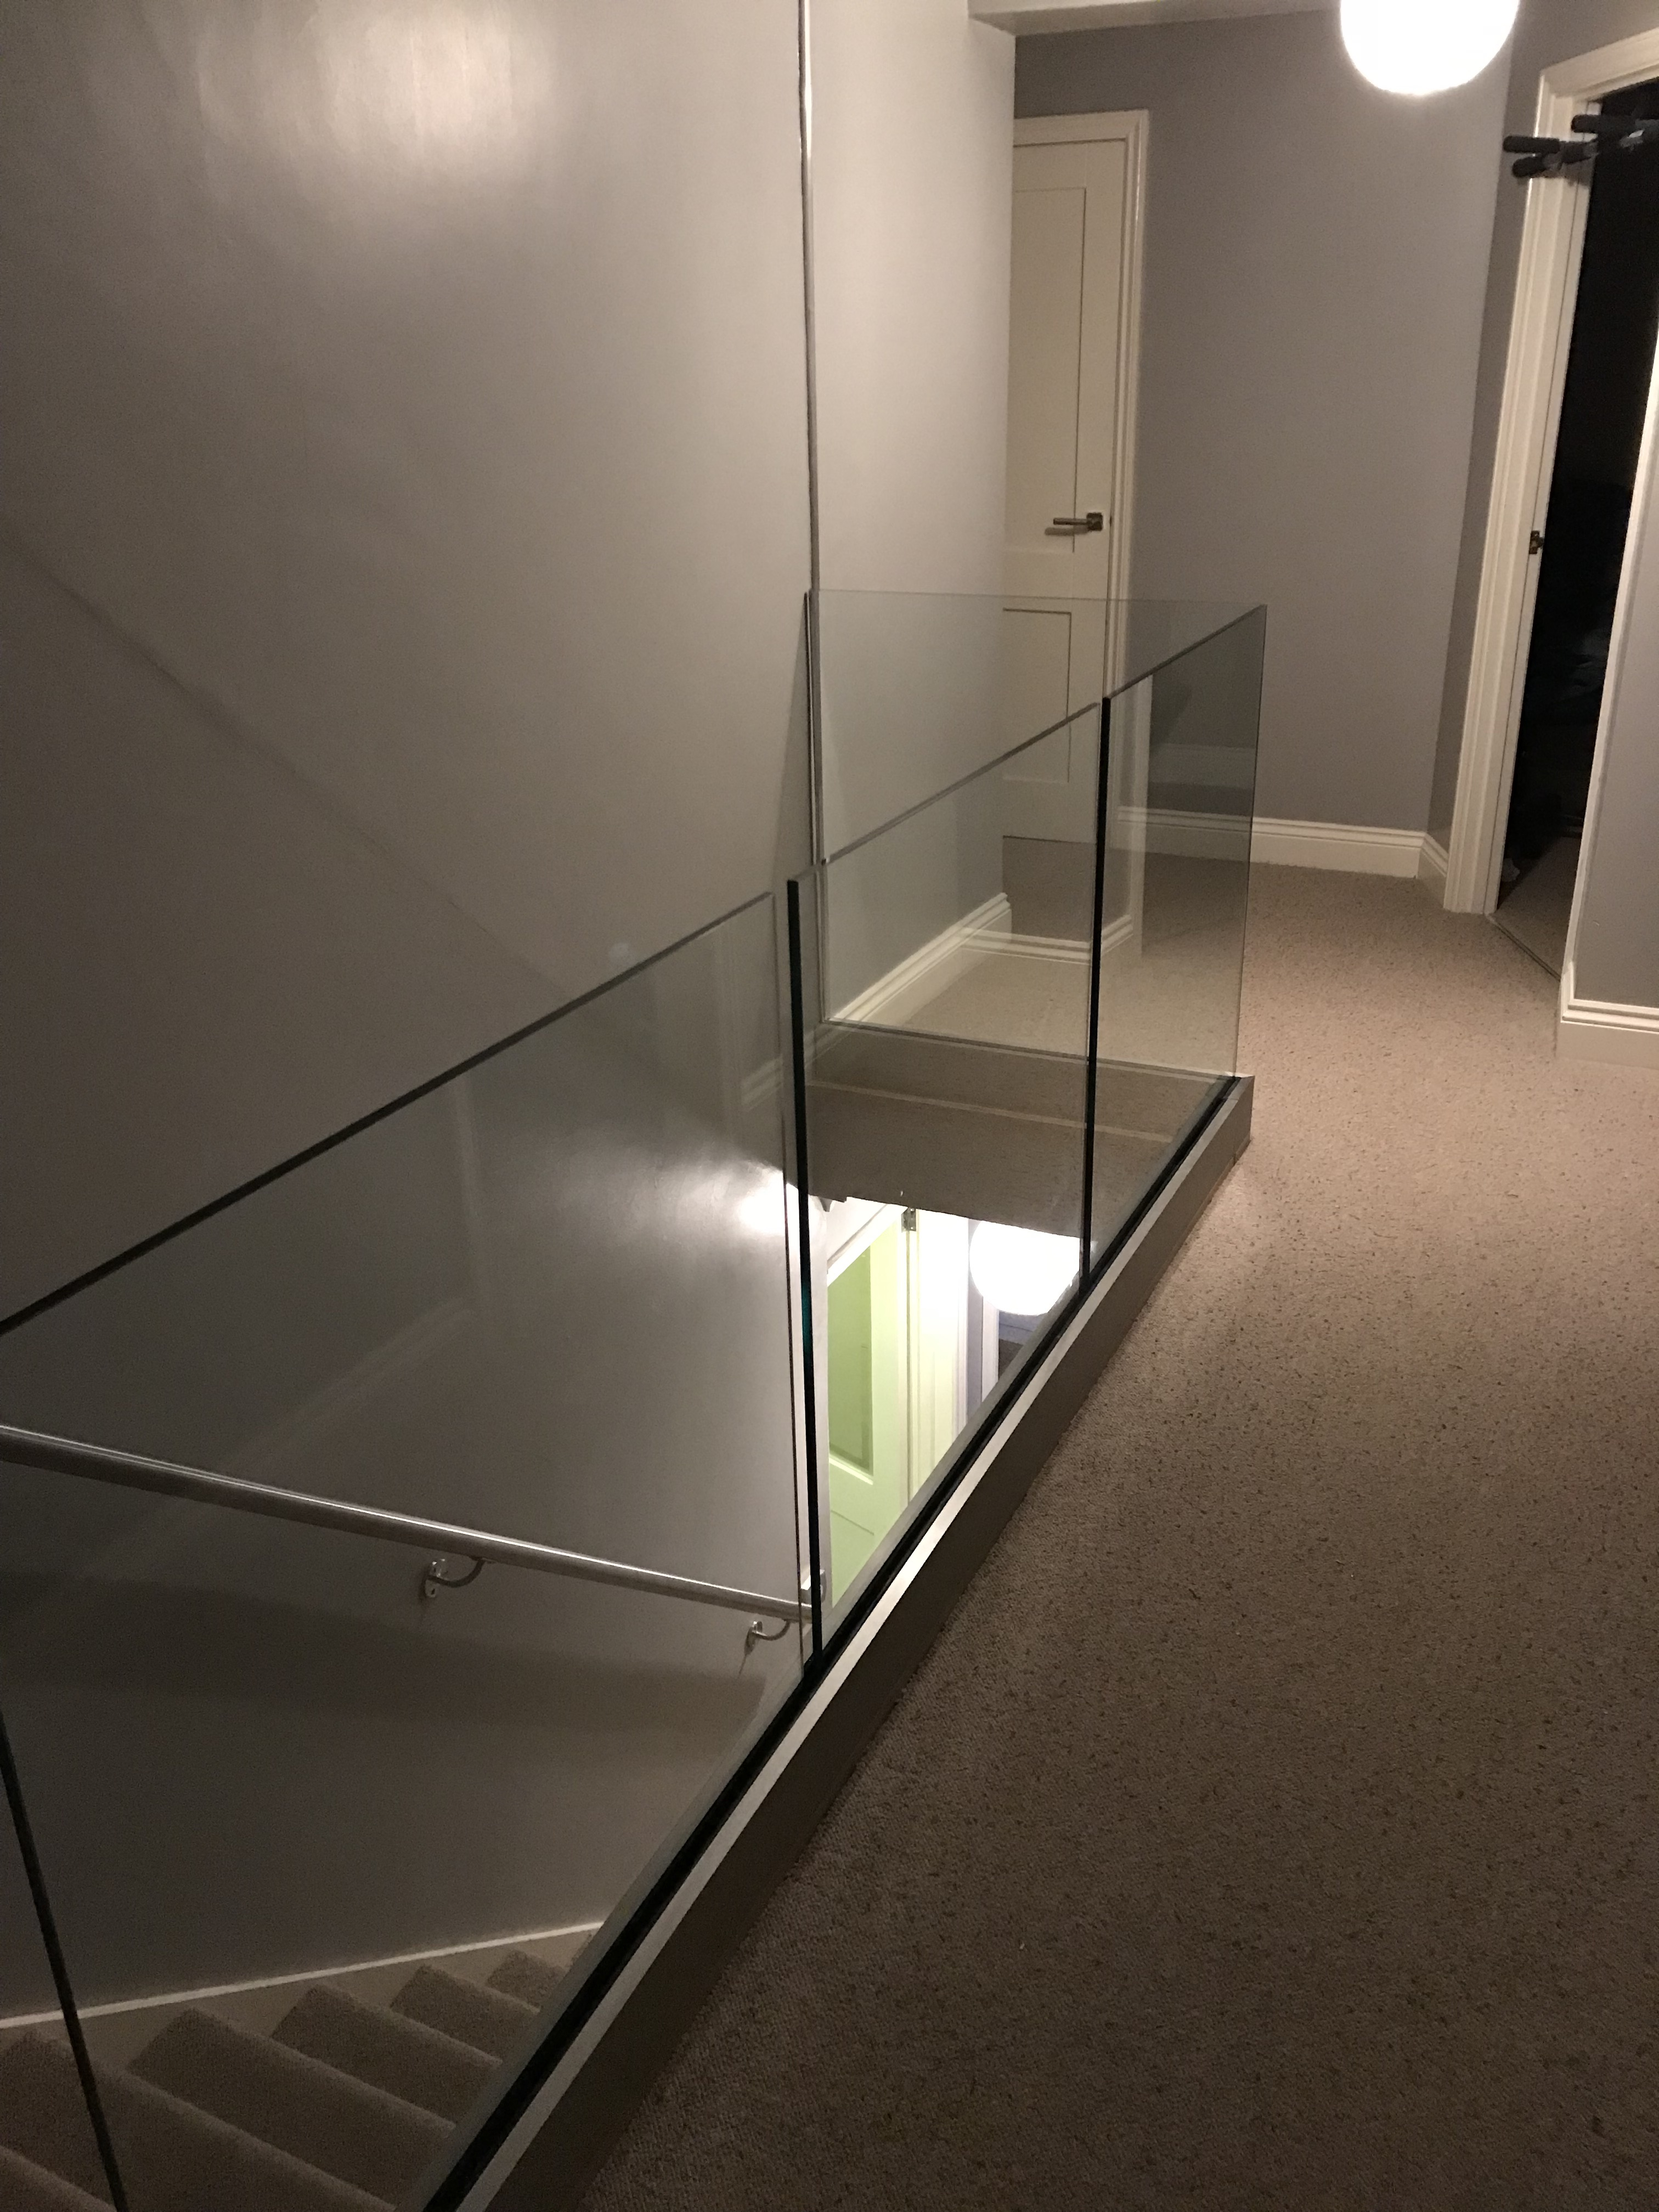 Infinity glass balustrade installed in this landing area in London